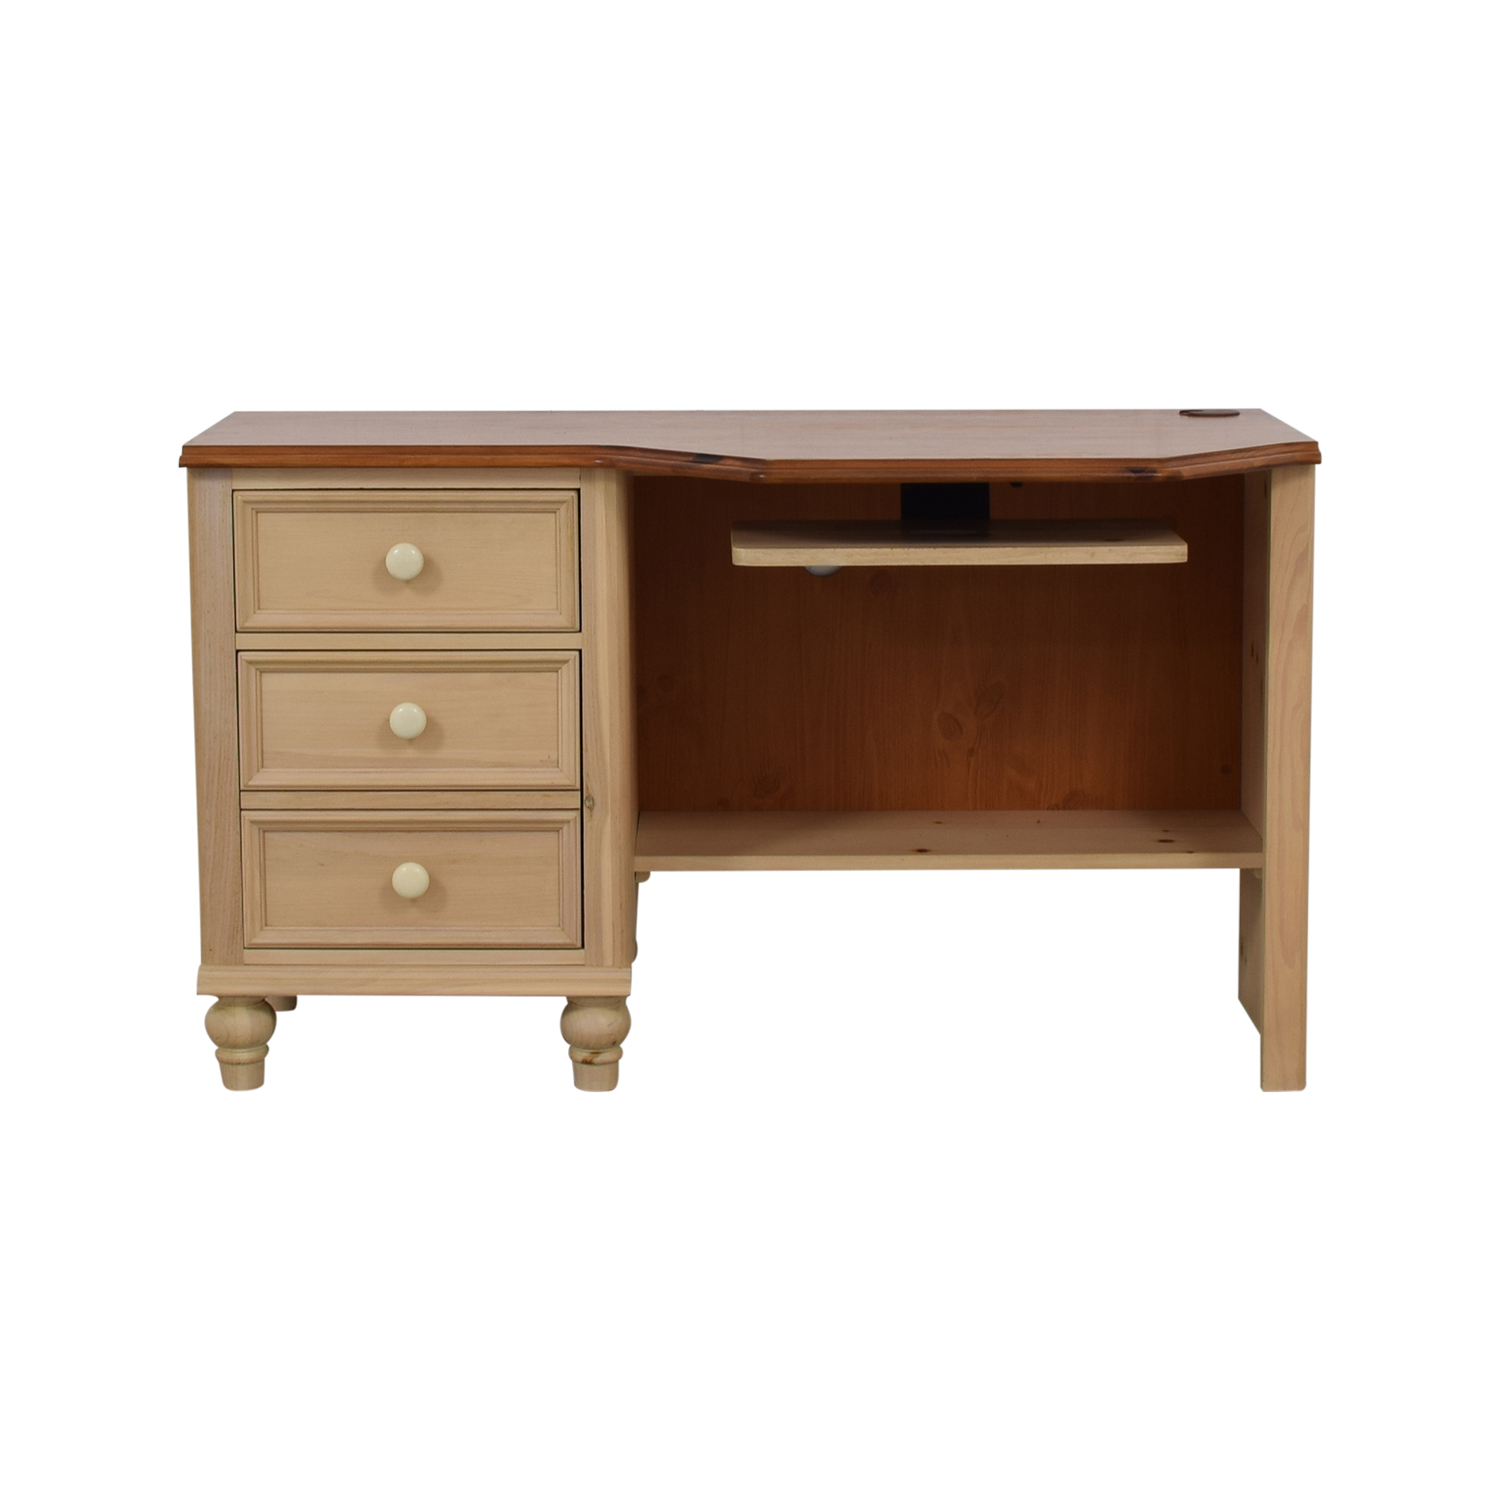 86 Off Broyhill Furniture Broyhill Two Drawer Computer Desk With Keyboard Tray Tables